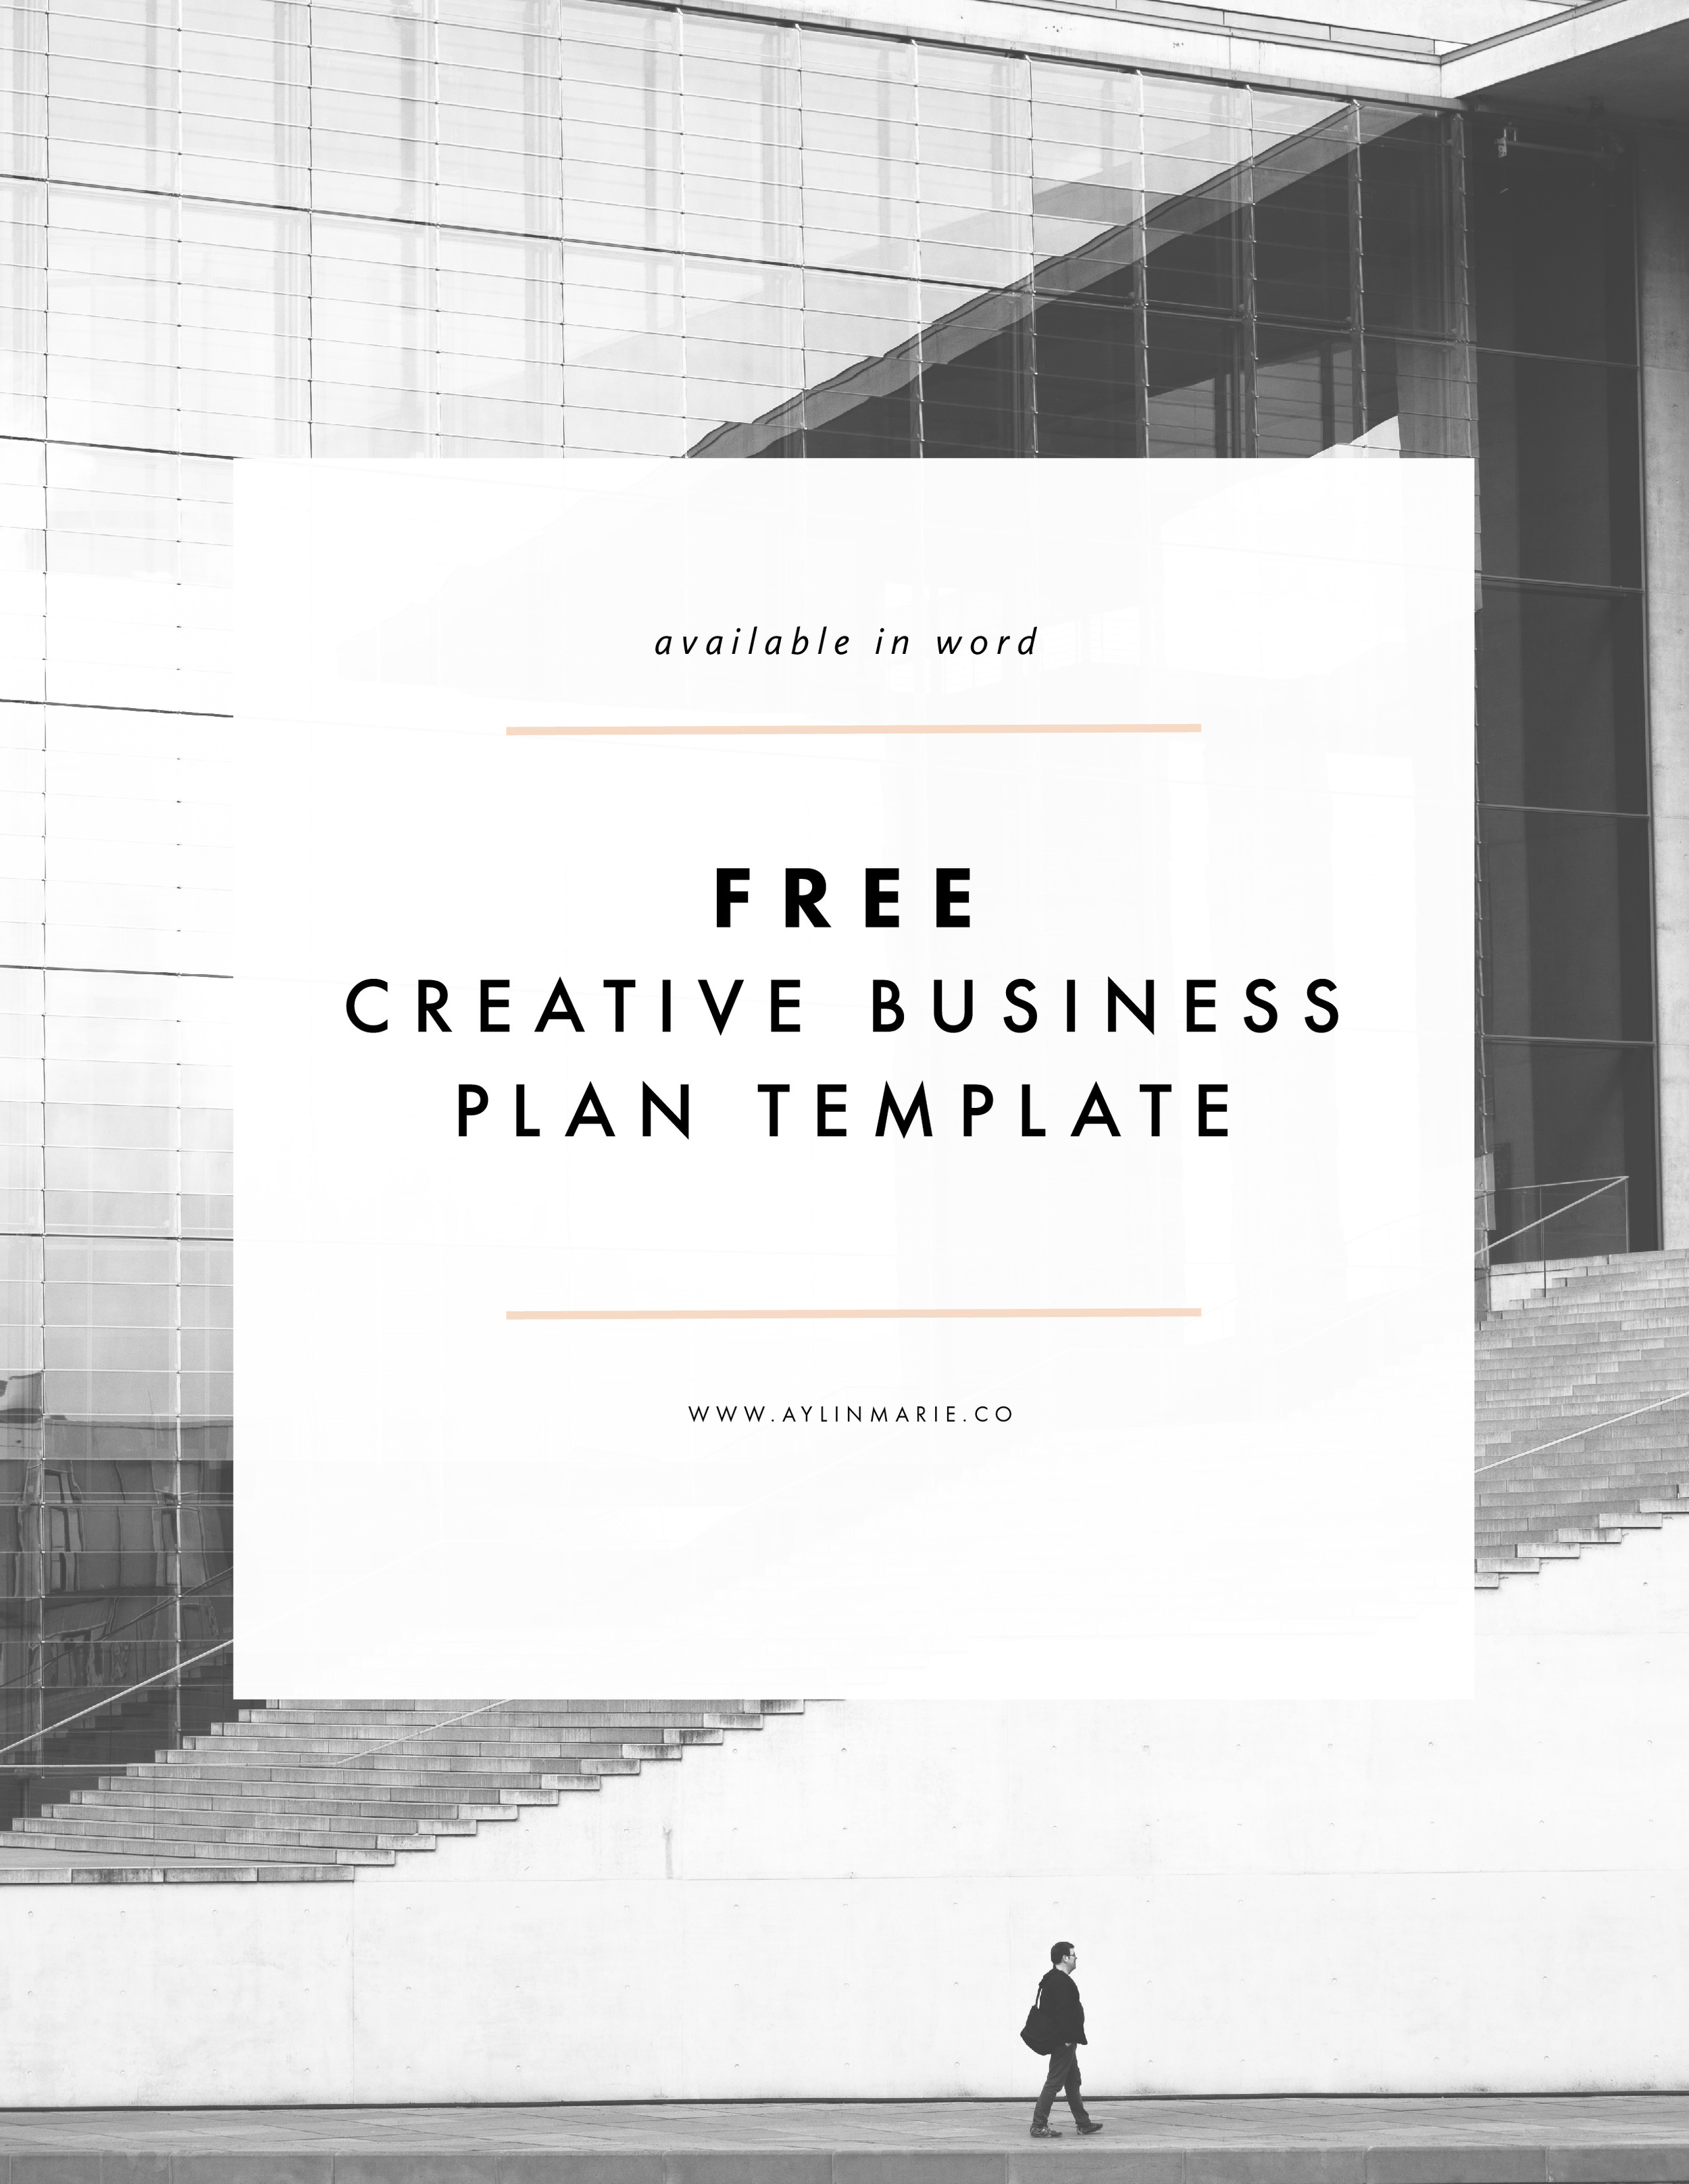 Freebie creative business plan template aylin marie freebie creative business plan template cheaphphosting Choice Image